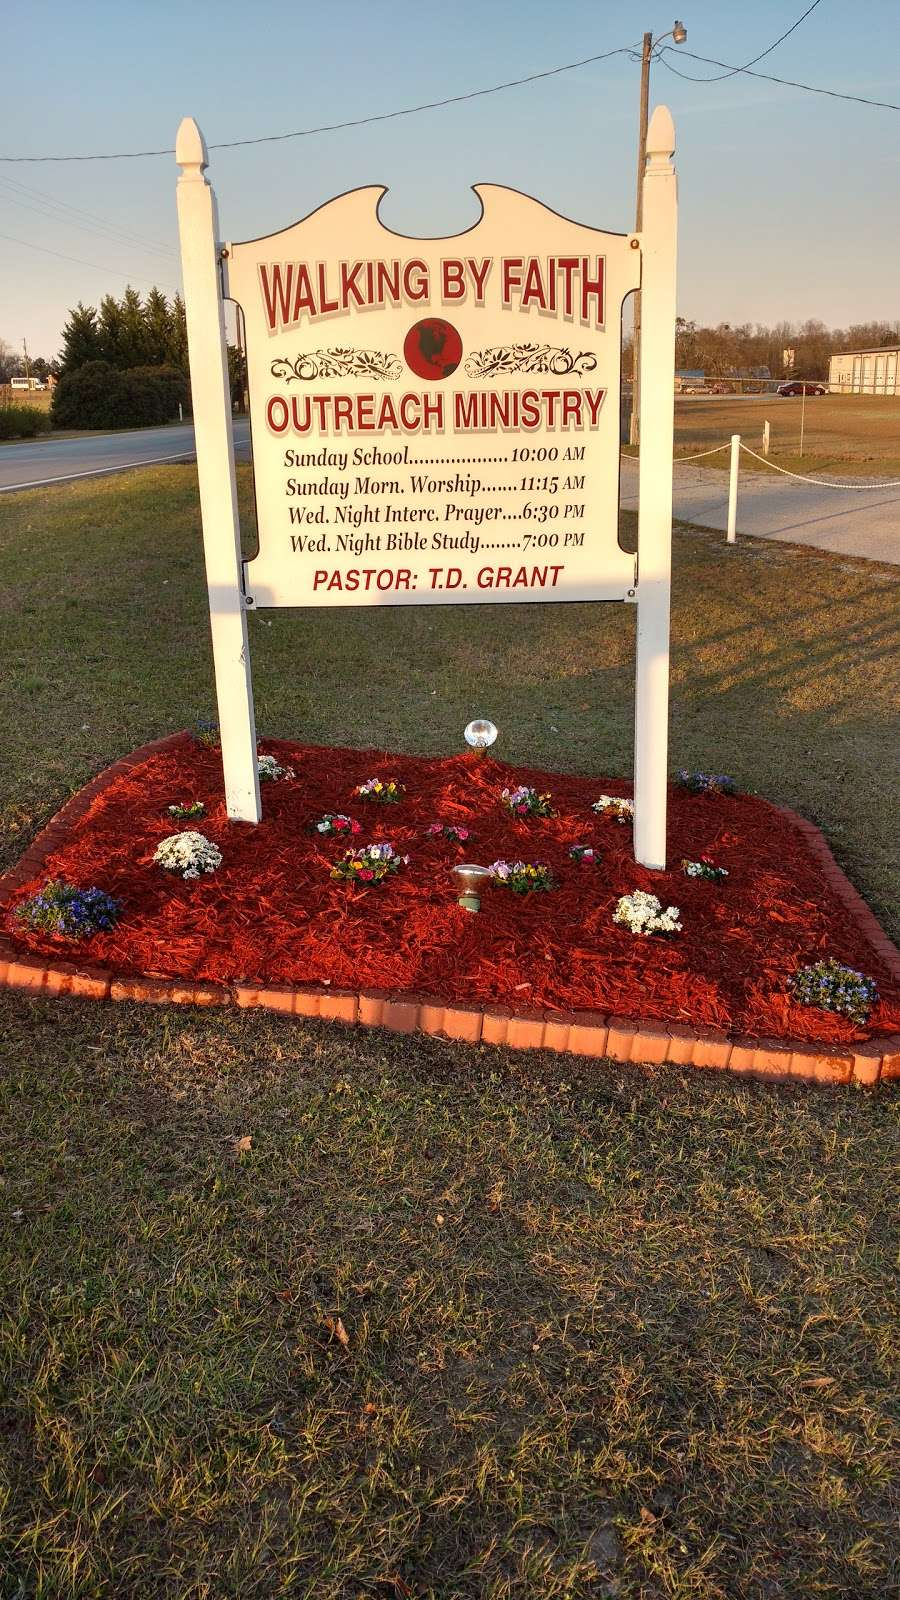 Walking By Faith Outreach Ministry - church  | Photo 2 of 9 | Address: 31587 SC-9, Pageland, SC 29728, USA